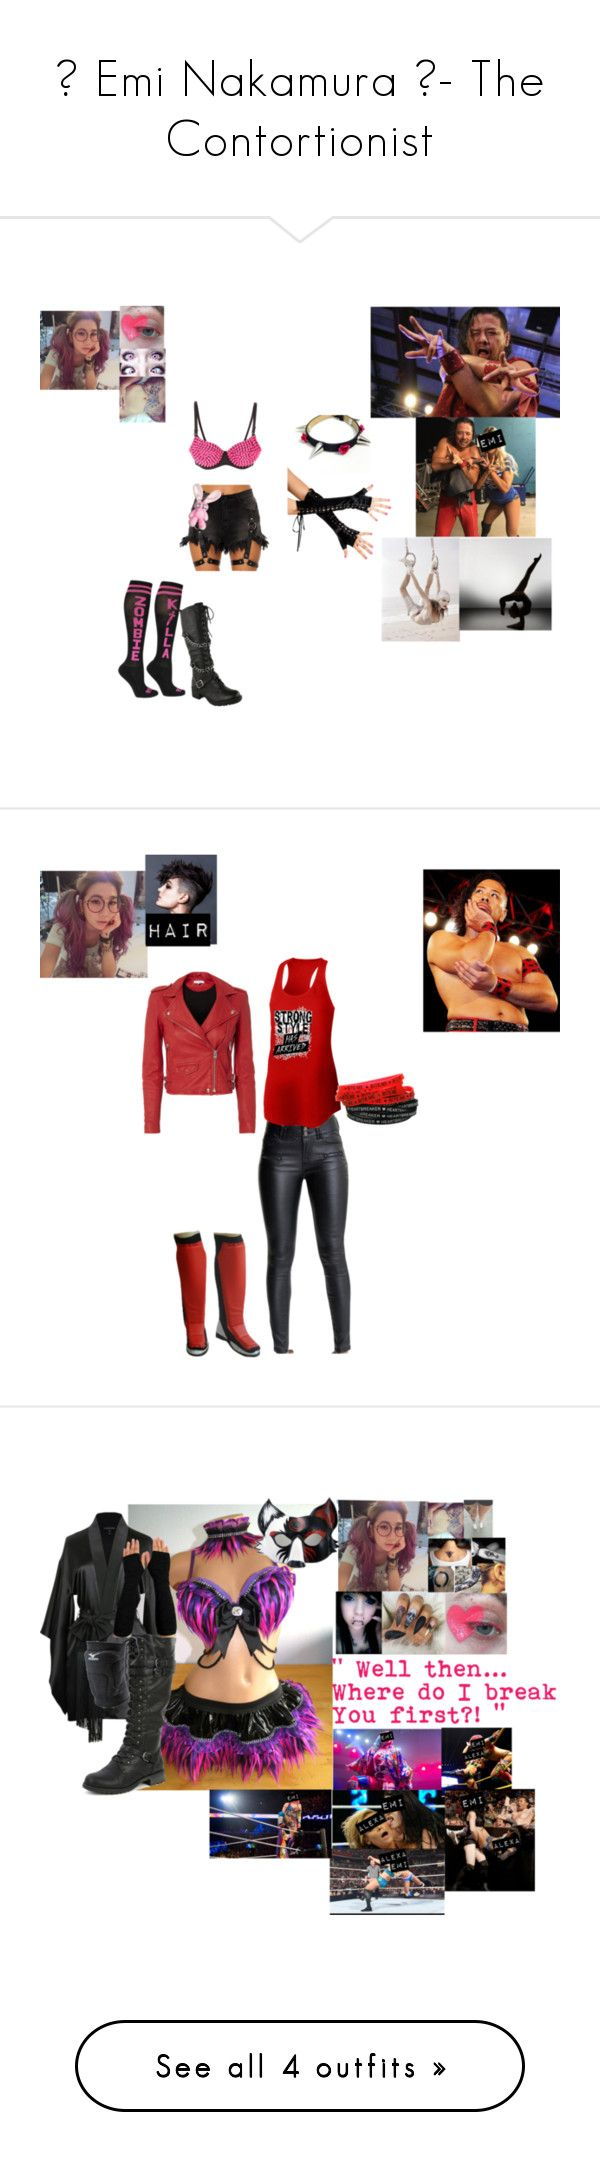 """😛 Emi Nakamura 😛- The Contortionist"" by iron-maiden-amy ❤ liked on Polyvore featuring UNIF, Poizen Industries, WWE, wweoc, wweattire, wweocattire, IRO, Hot Topic, Kiki de Montparnasse and Wild Diva"